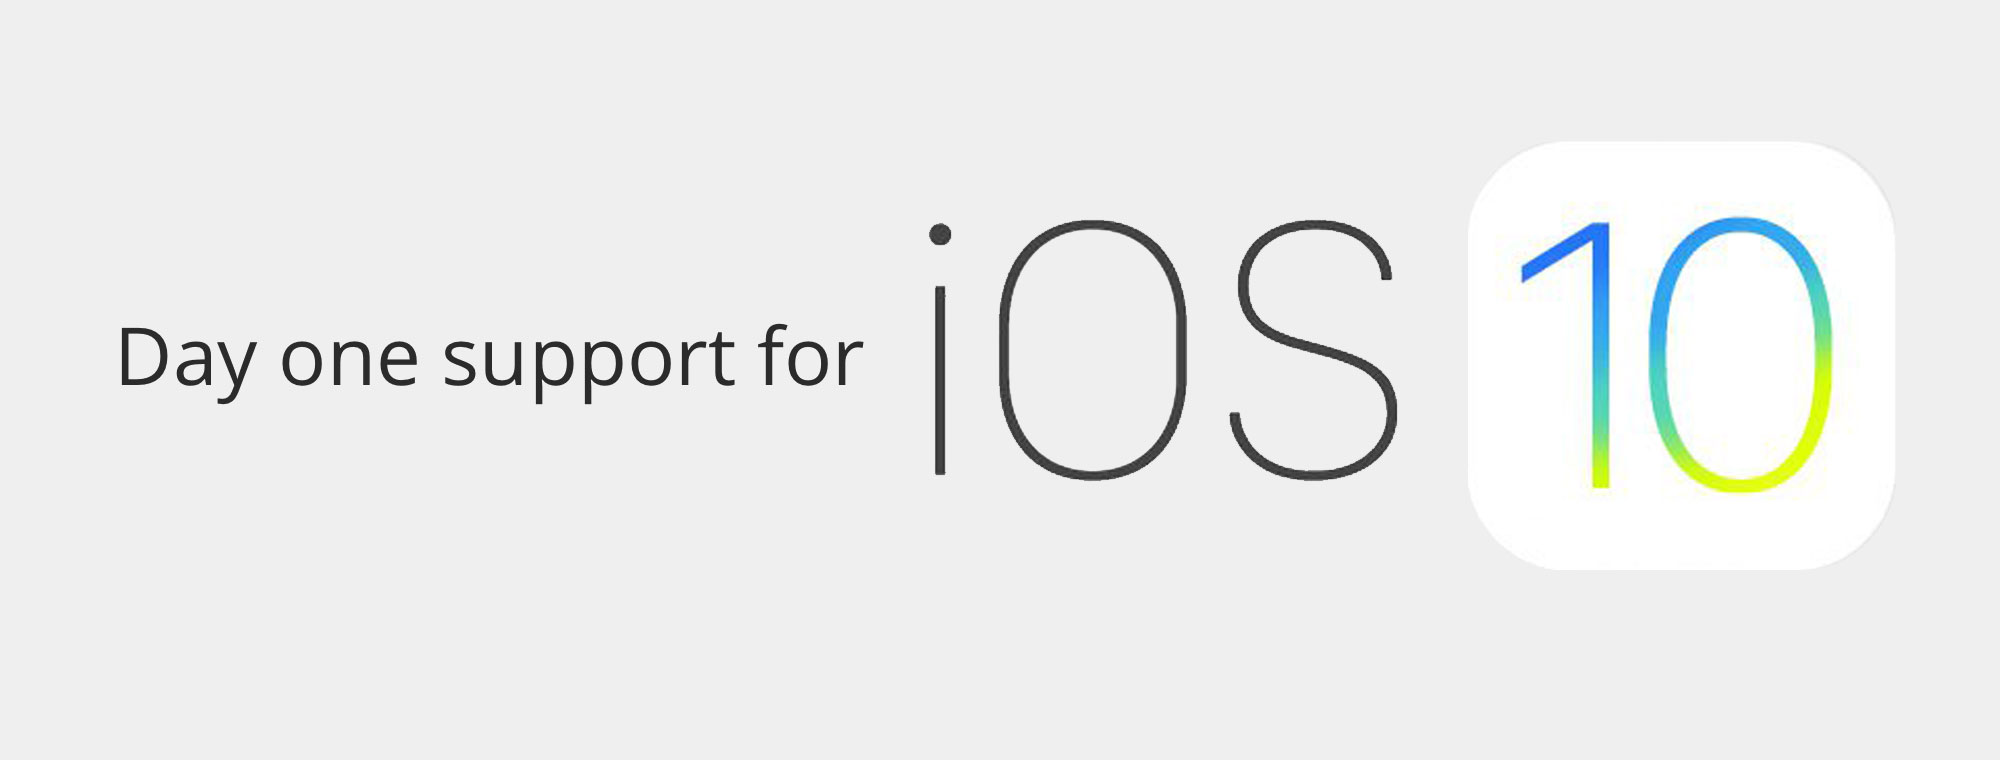 Day one support for iOS 10